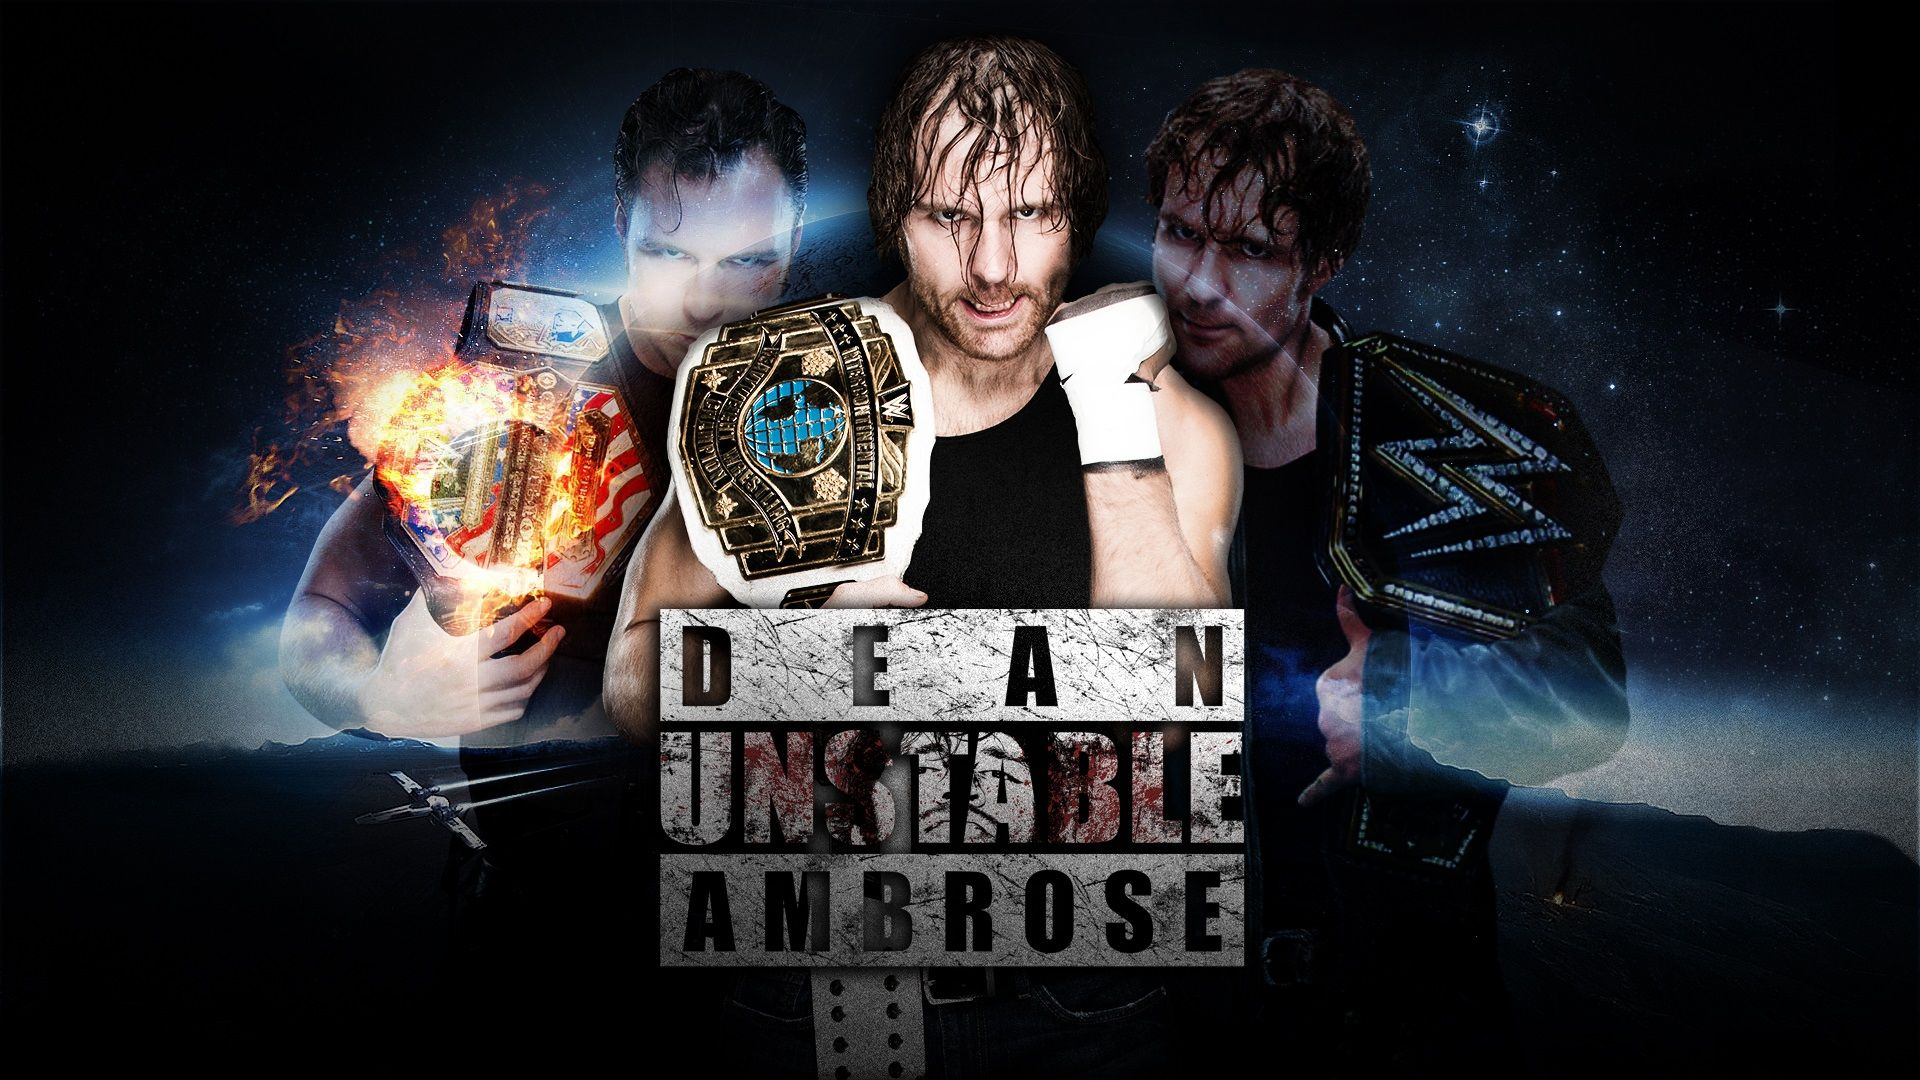 Dean Ambrose Wallpapers 2017 Whb 9 DeanAmbroseWallpapers2017 DeanAmbrose WWEDeanAmbrose Wwe Wrestling